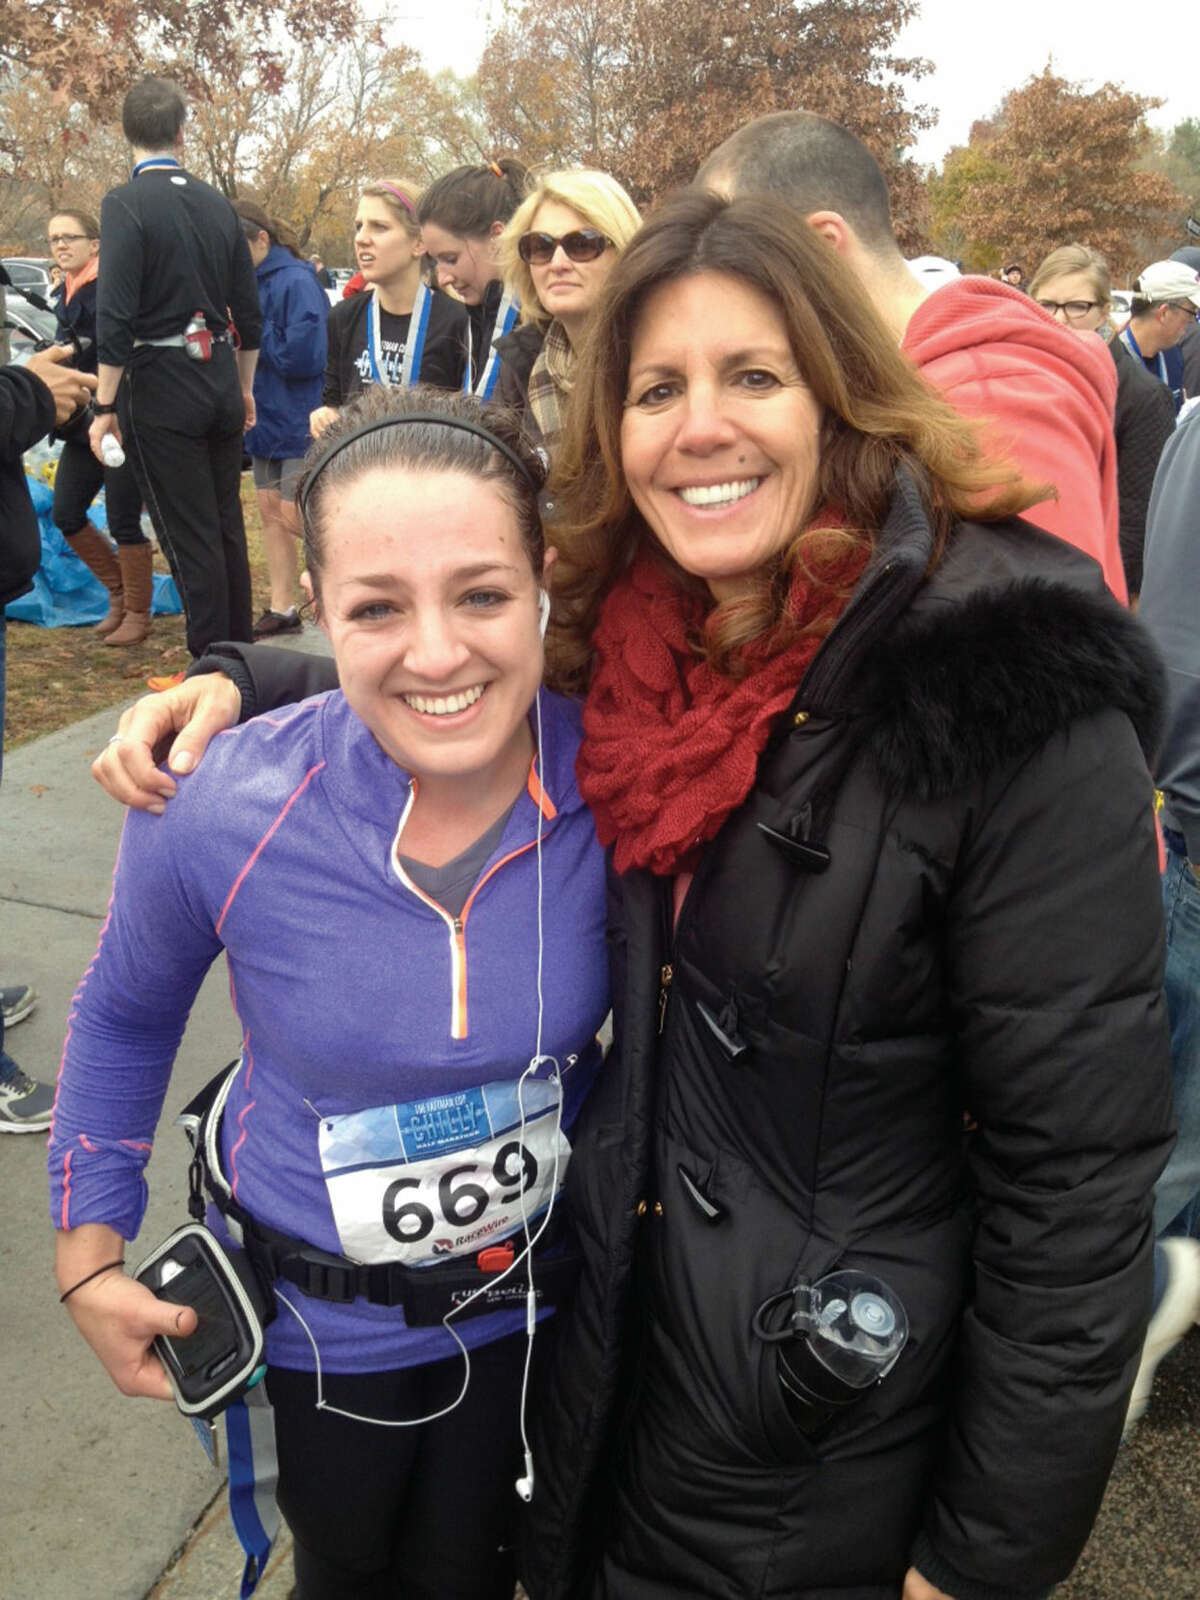 Casey Osgood, a 2010 Wilton High School graduate, plans to run the Boston Marathon to raise money for cancer research. She is pictured here with her mother.